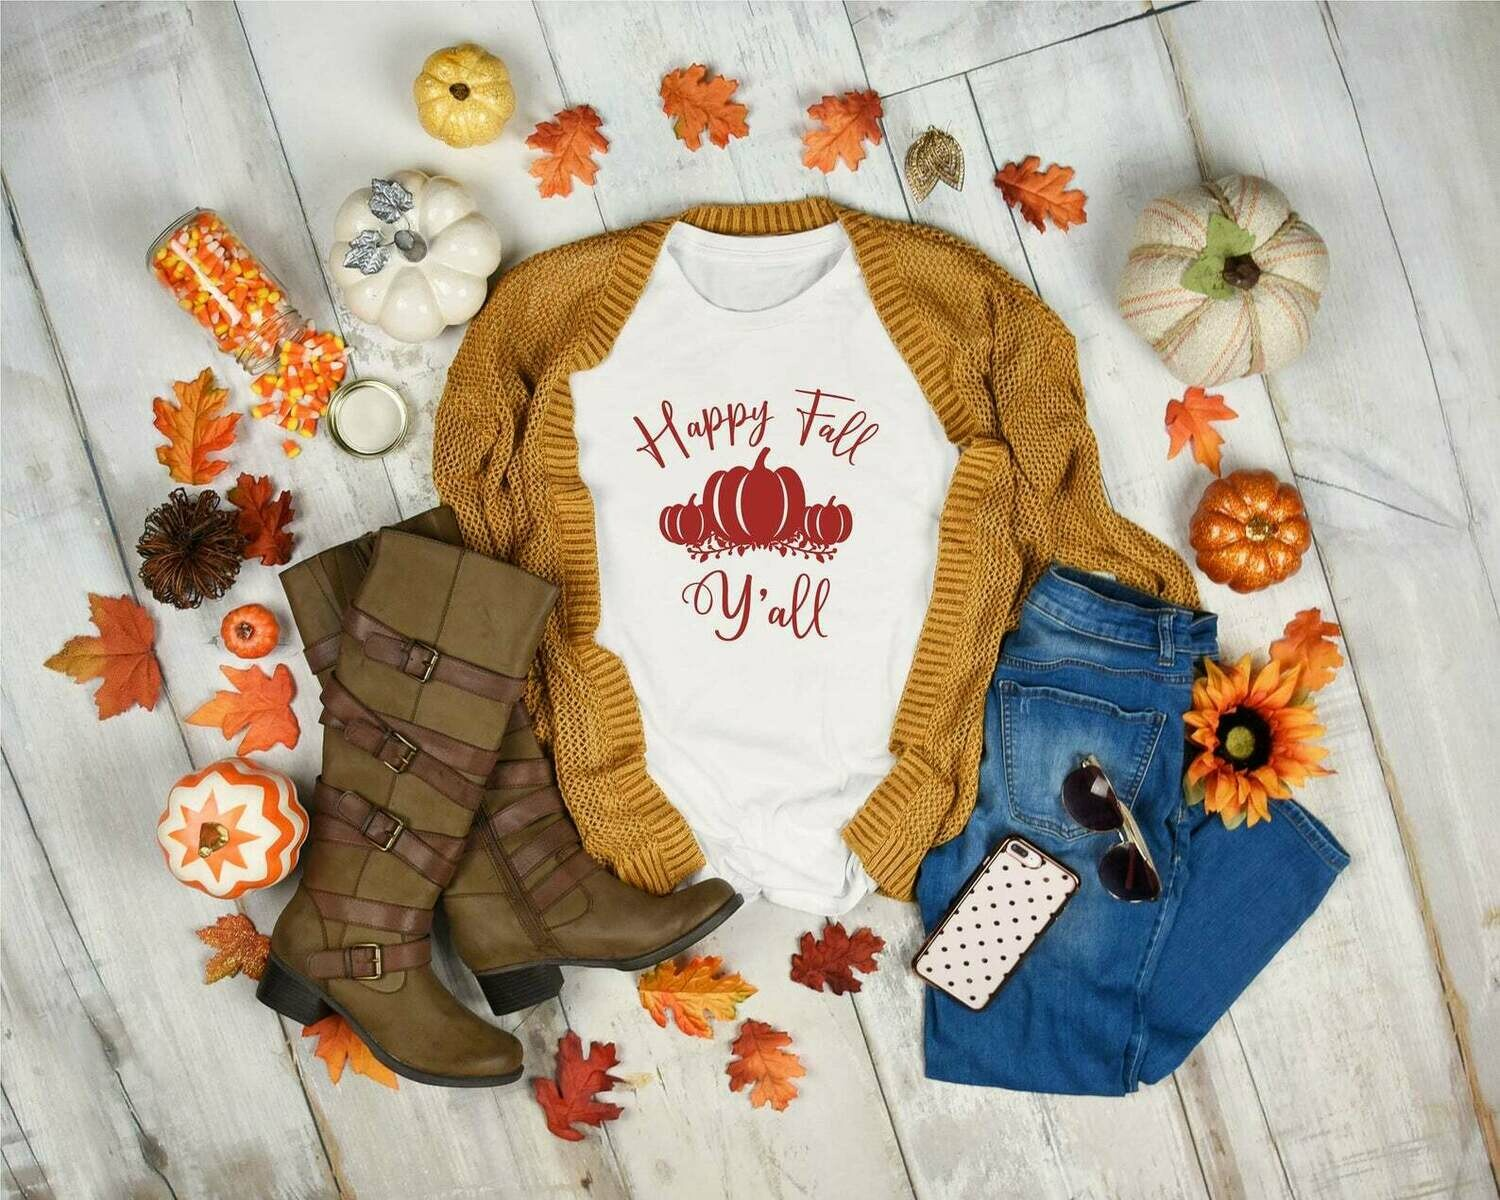 Fall T-shirts for woman, Autumn Leaves and Pumpkins,Fall shirt, Autumn Shirt, Pumpkin shirt, Thanksgiving, Women's Graphic Tee, Fall T-shirts